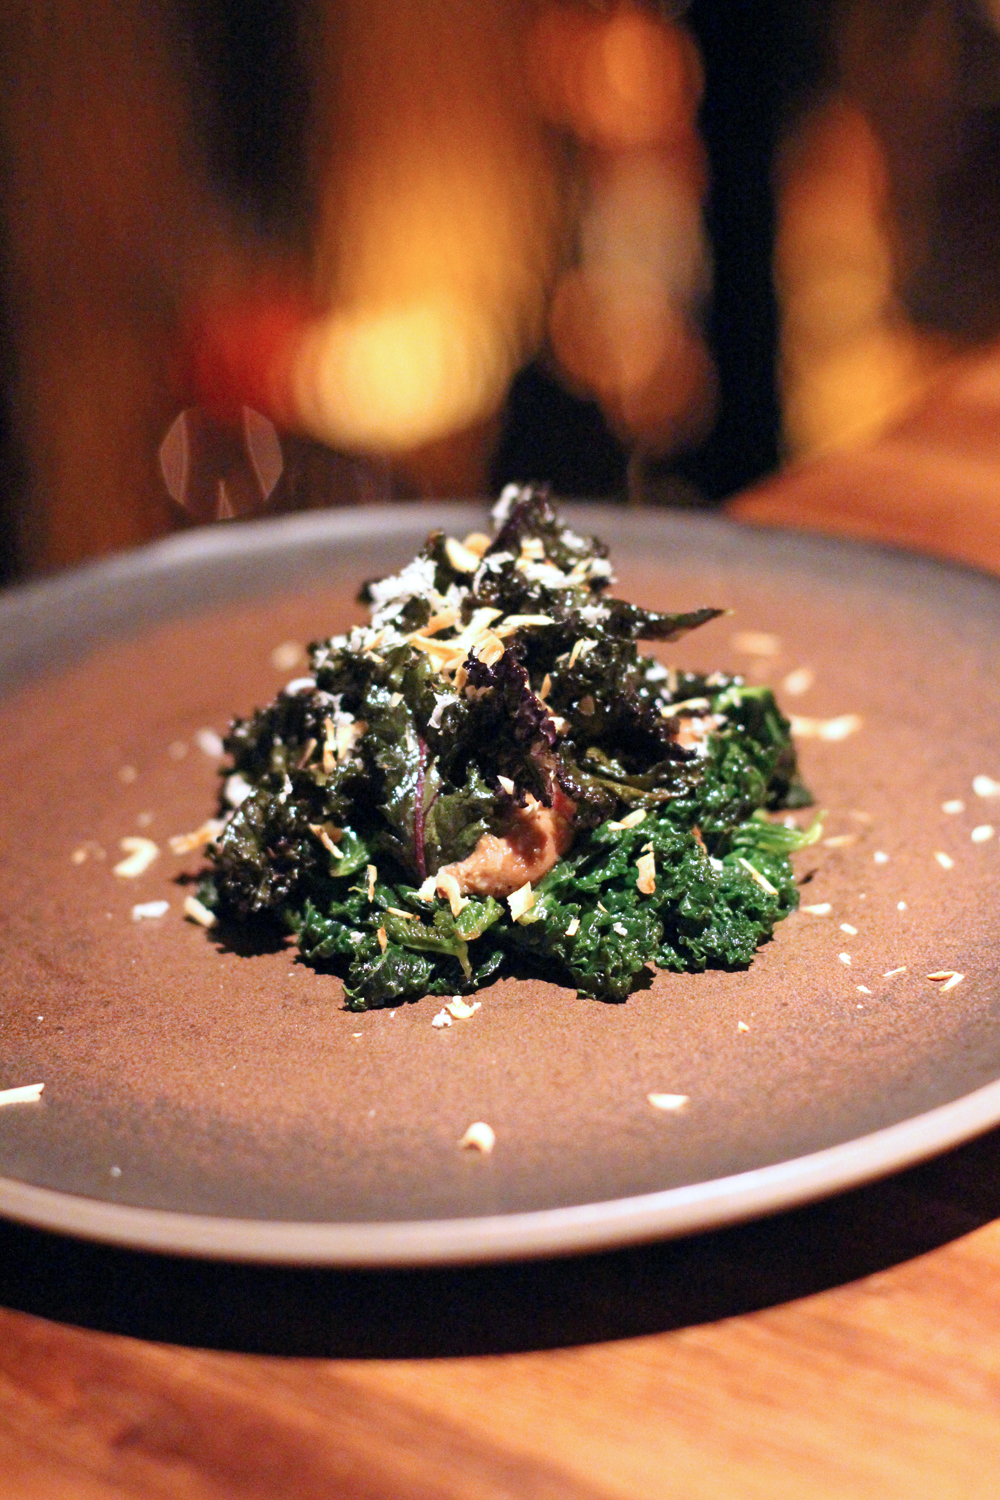 Kale dish at Restaurant Volt, Berlin - travel & lifestyle blog